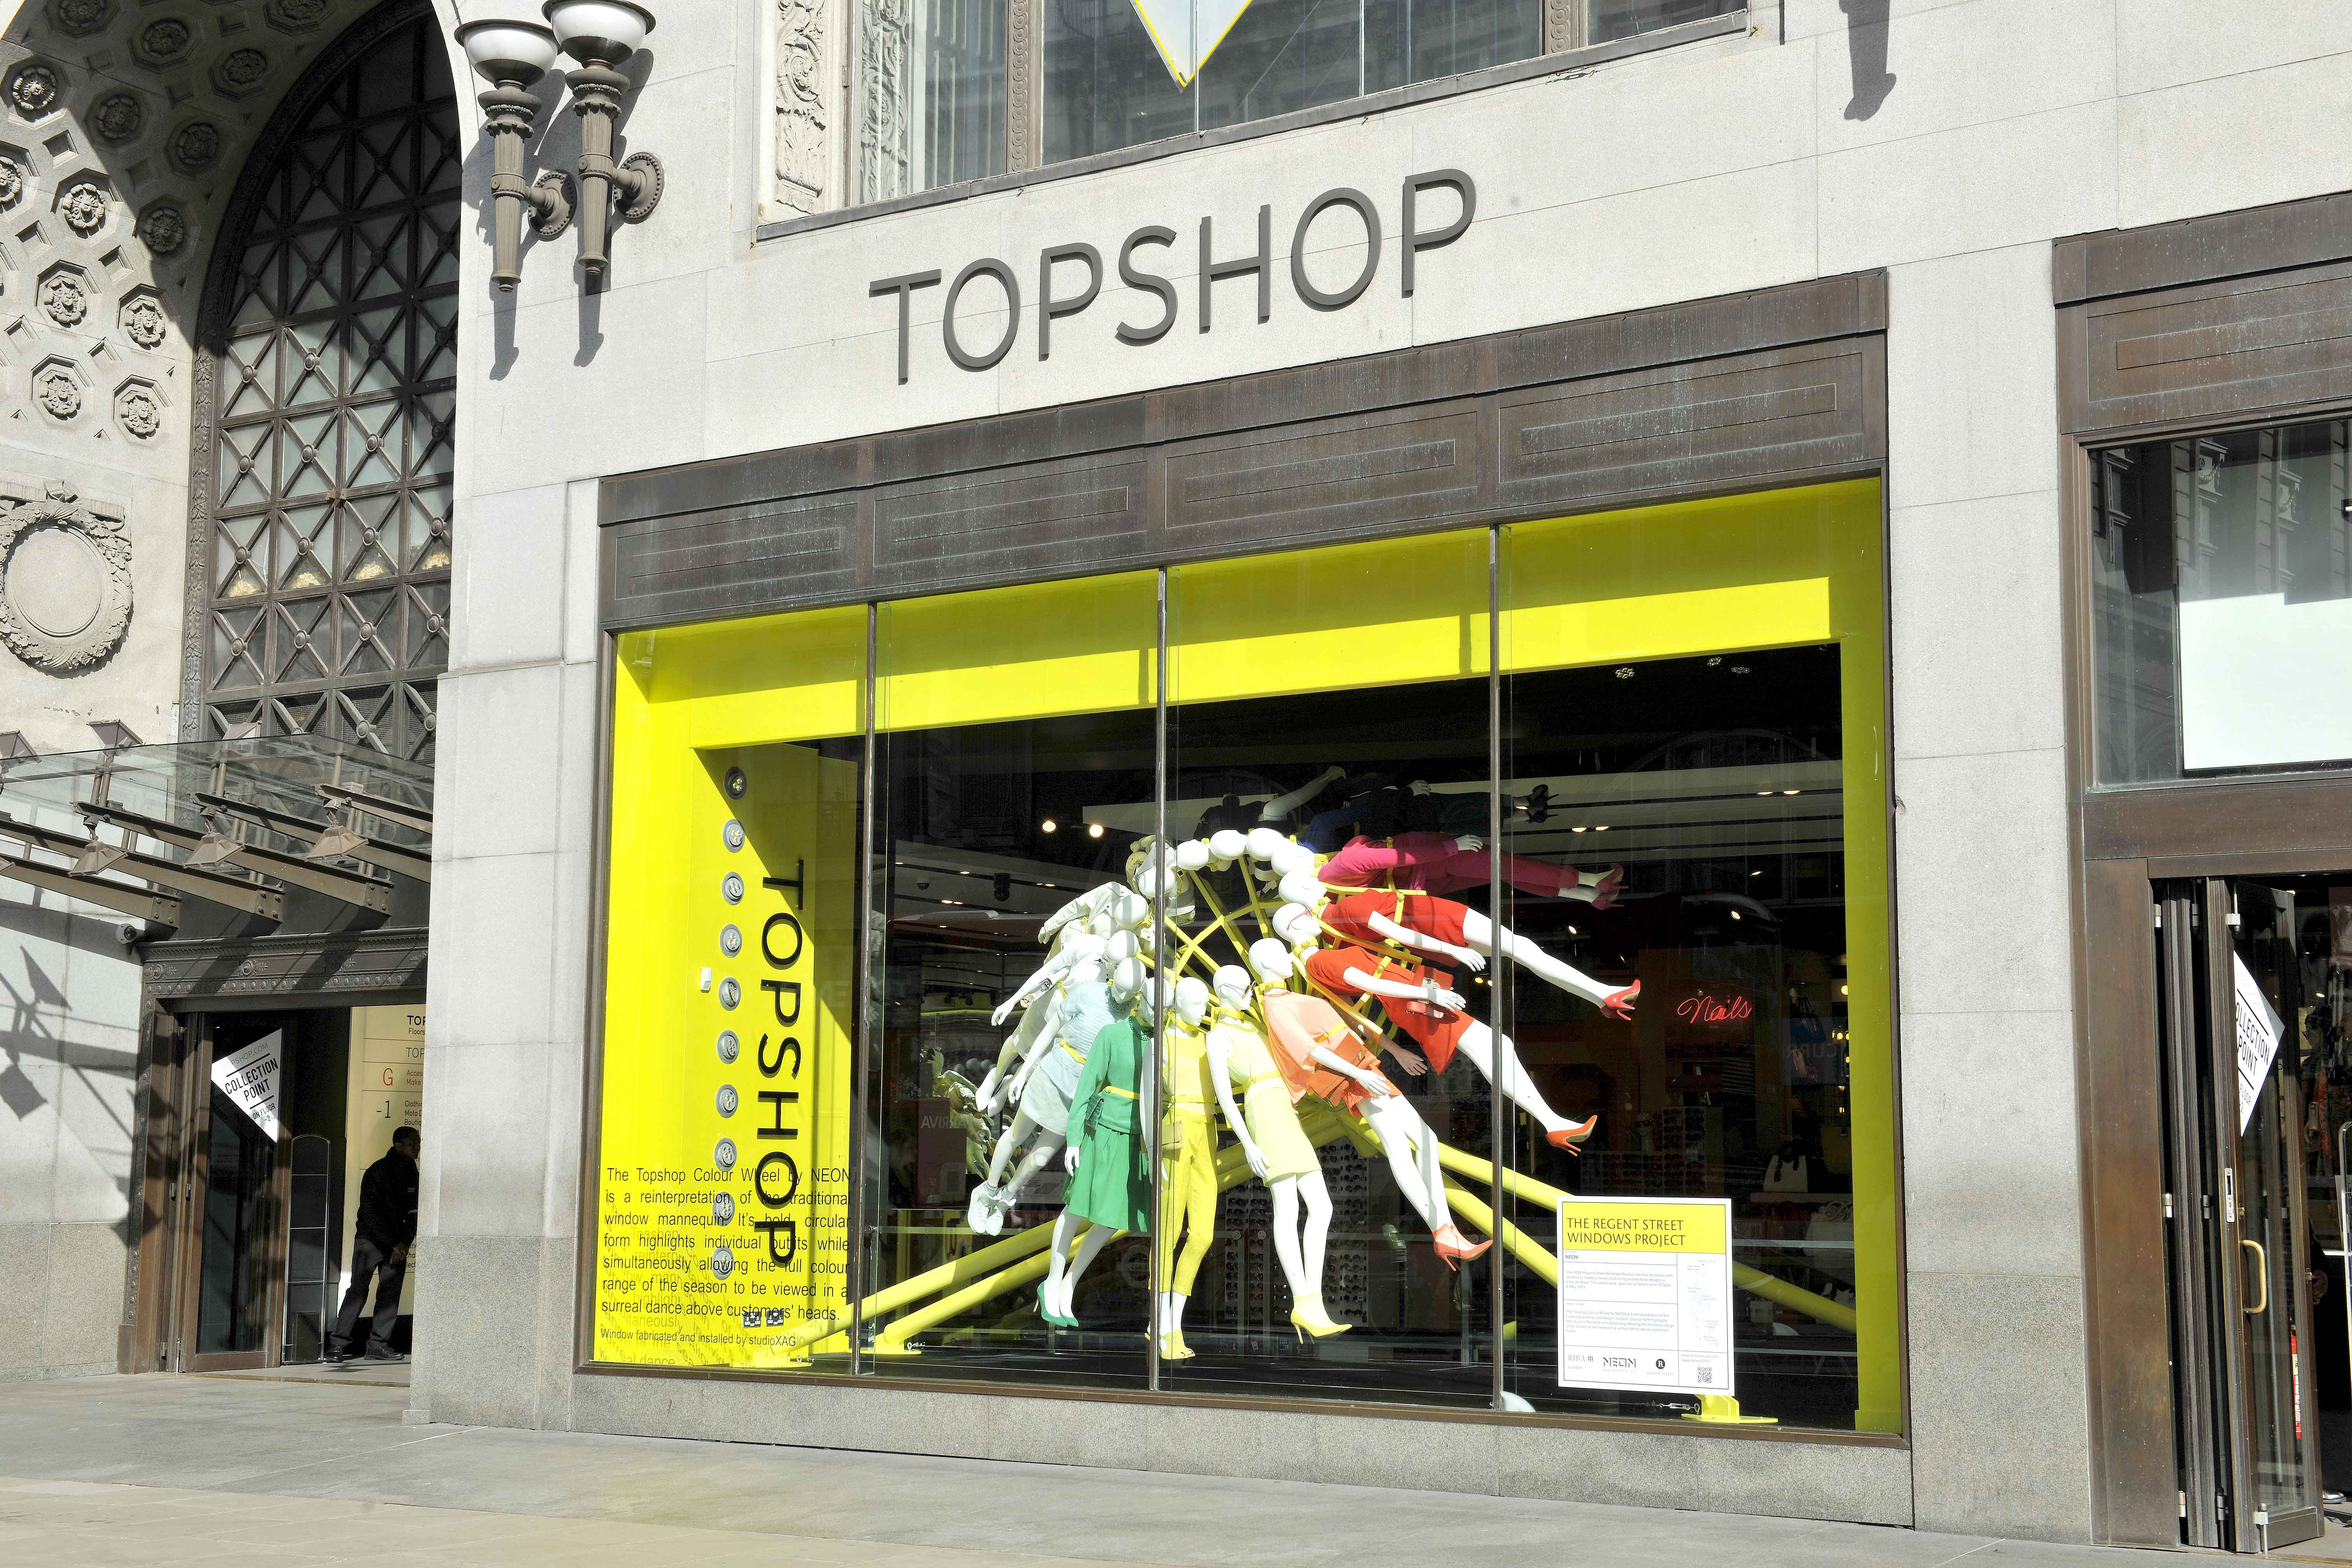 The regent street windows project 2012 - Topshop Windows Are Inviting And Eye Catching